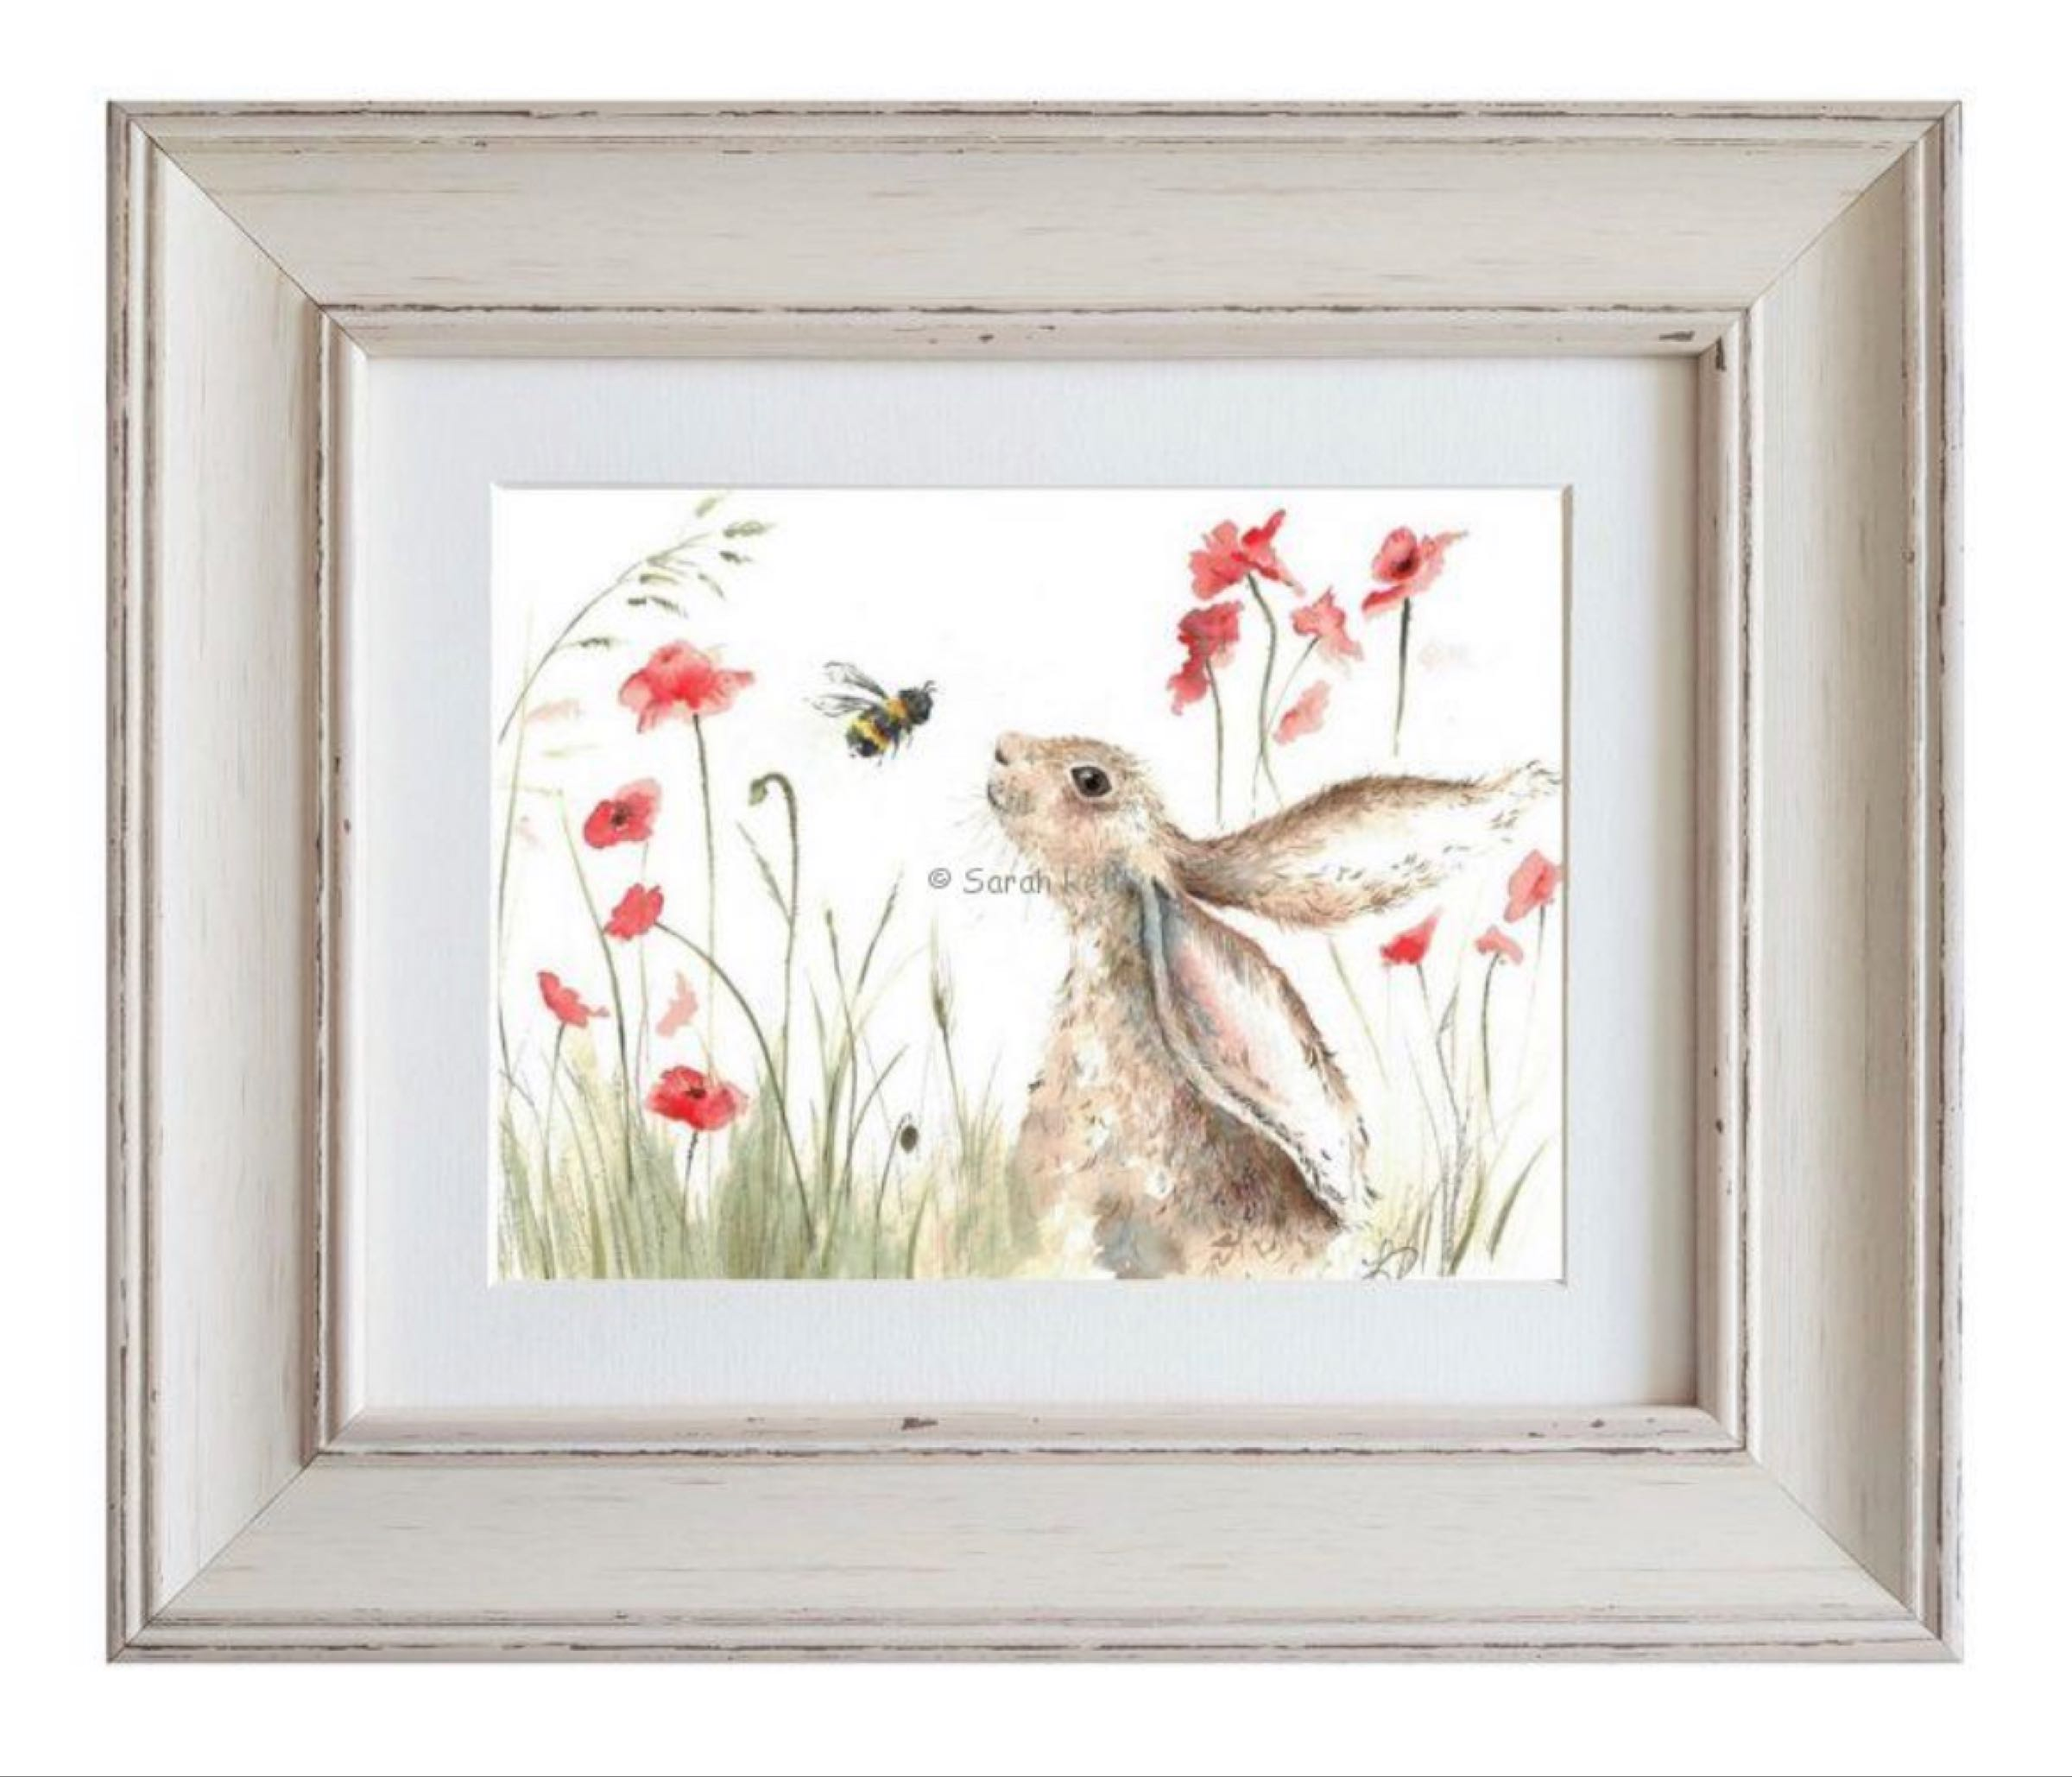 Bee Lovely Framed Print by Sarah Reilly  28cmx33cm